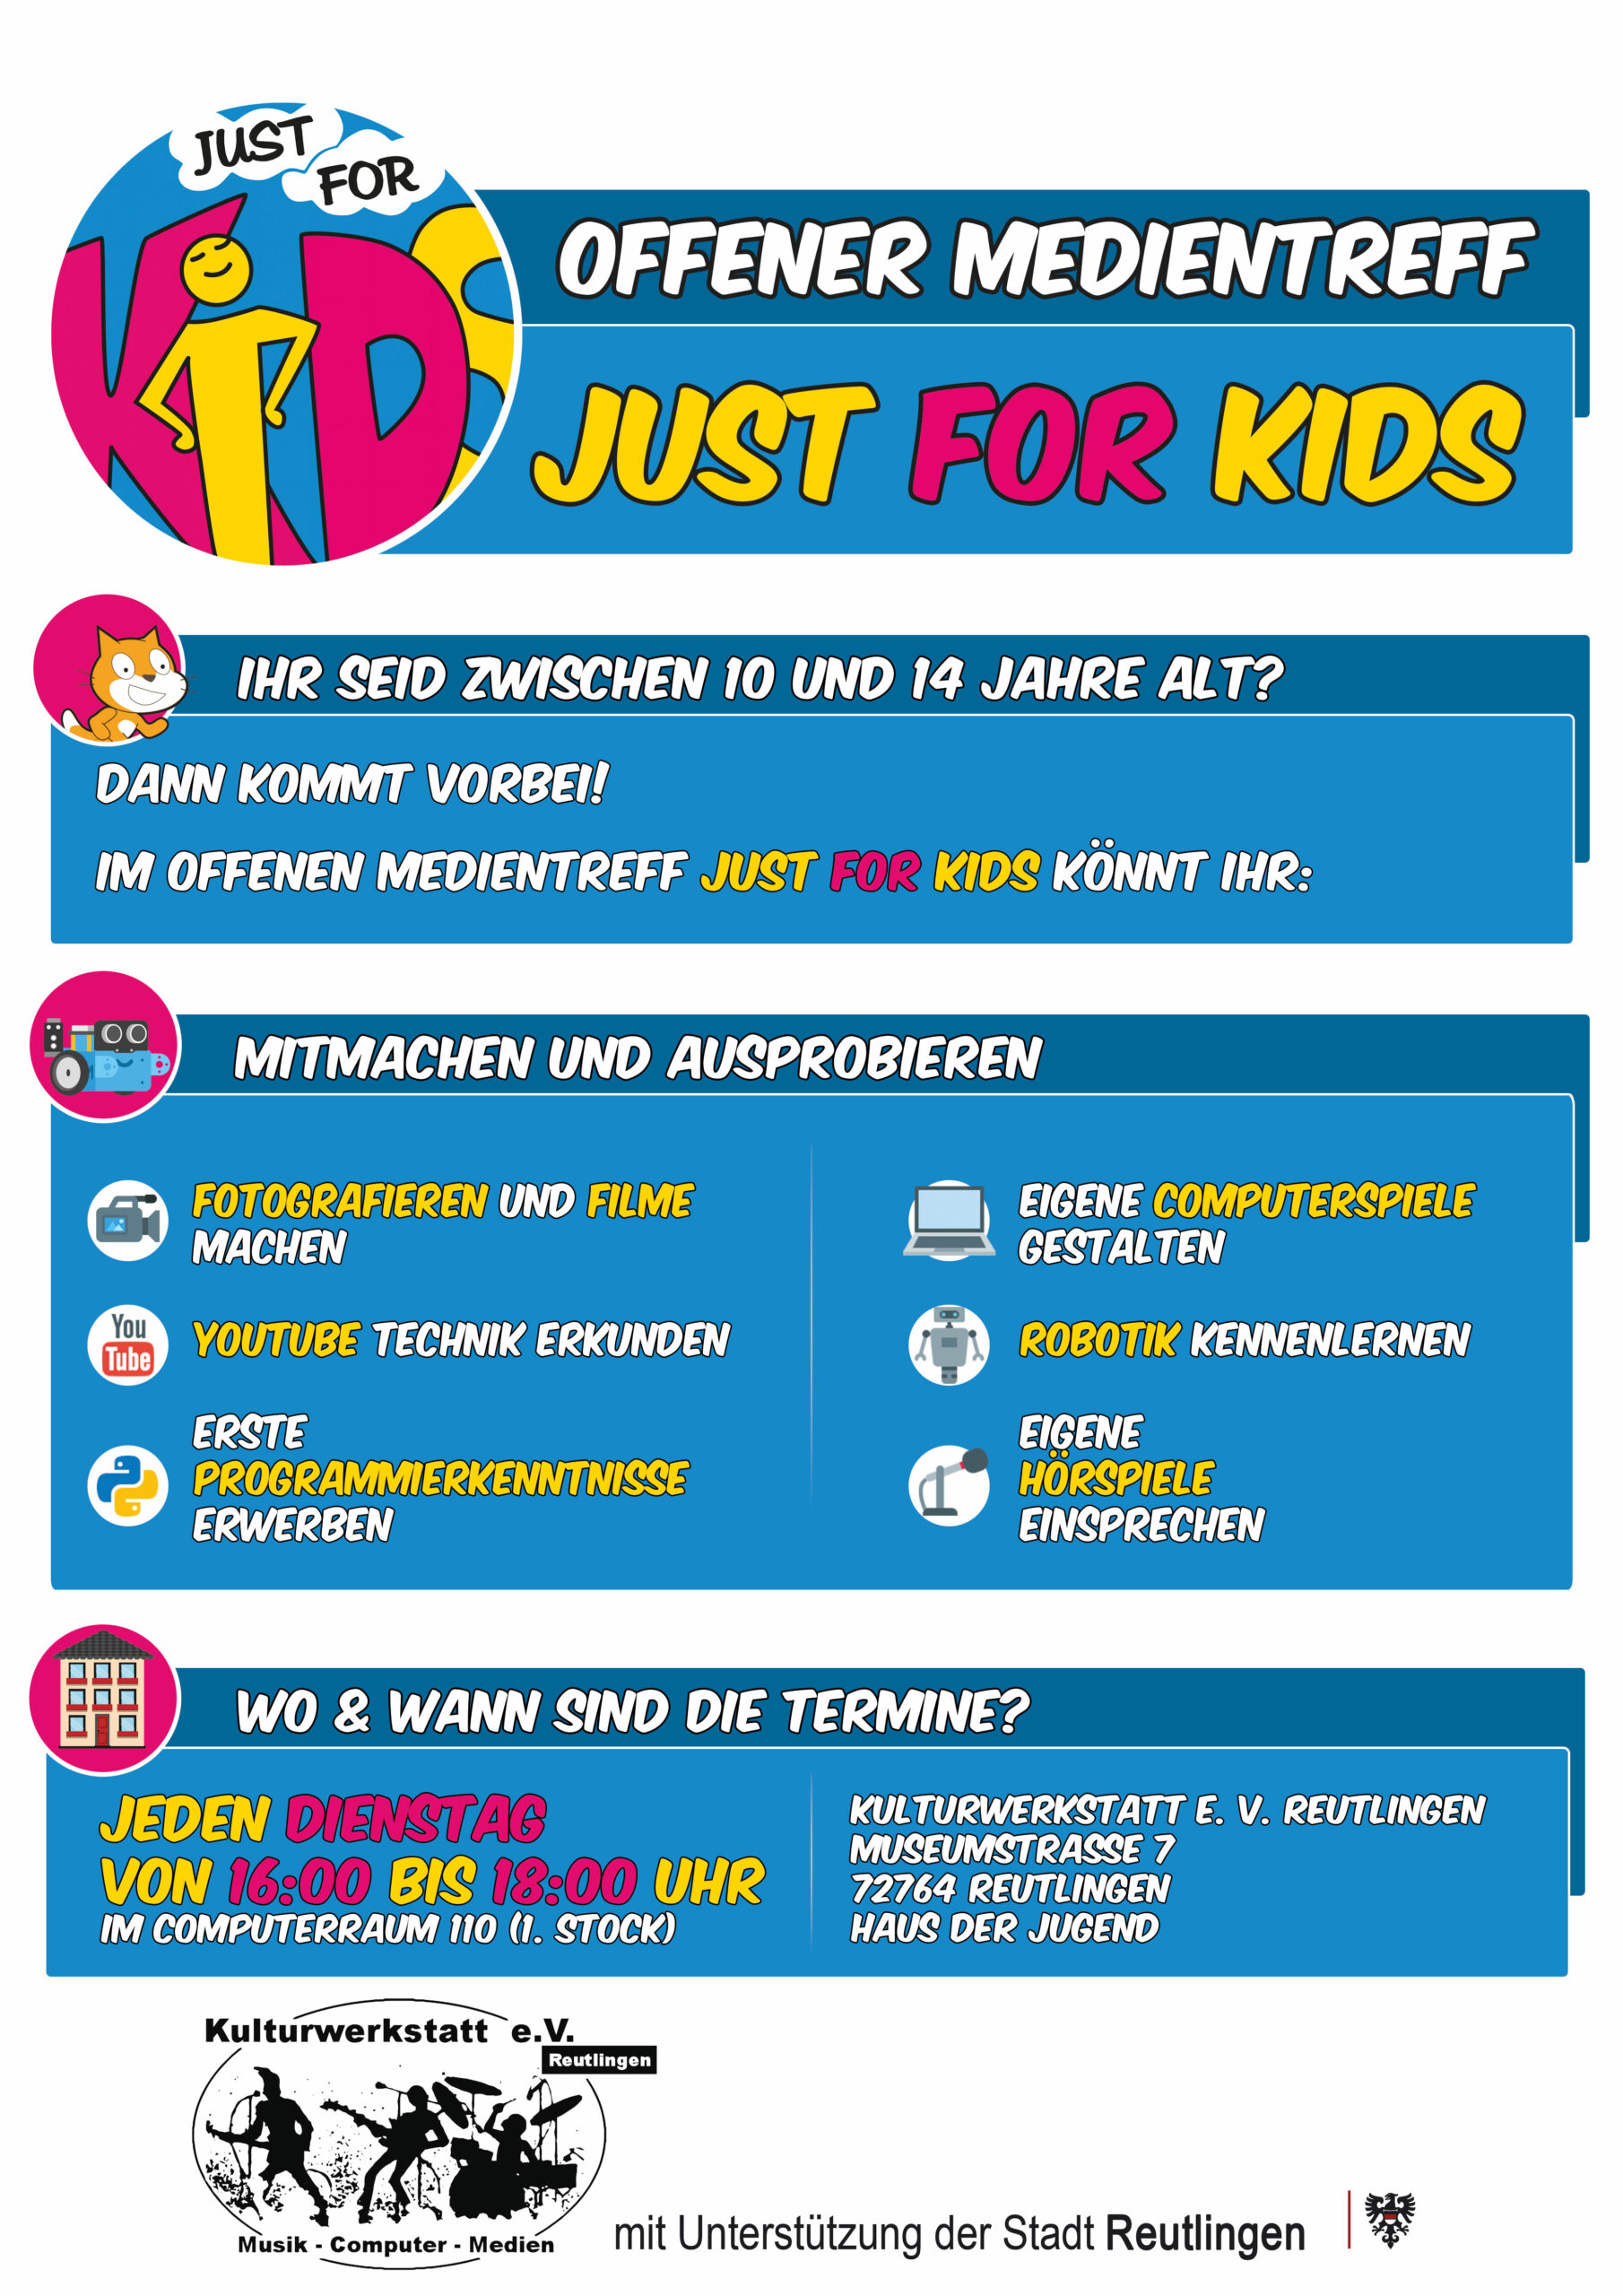 Offener Medientreff: just for kids